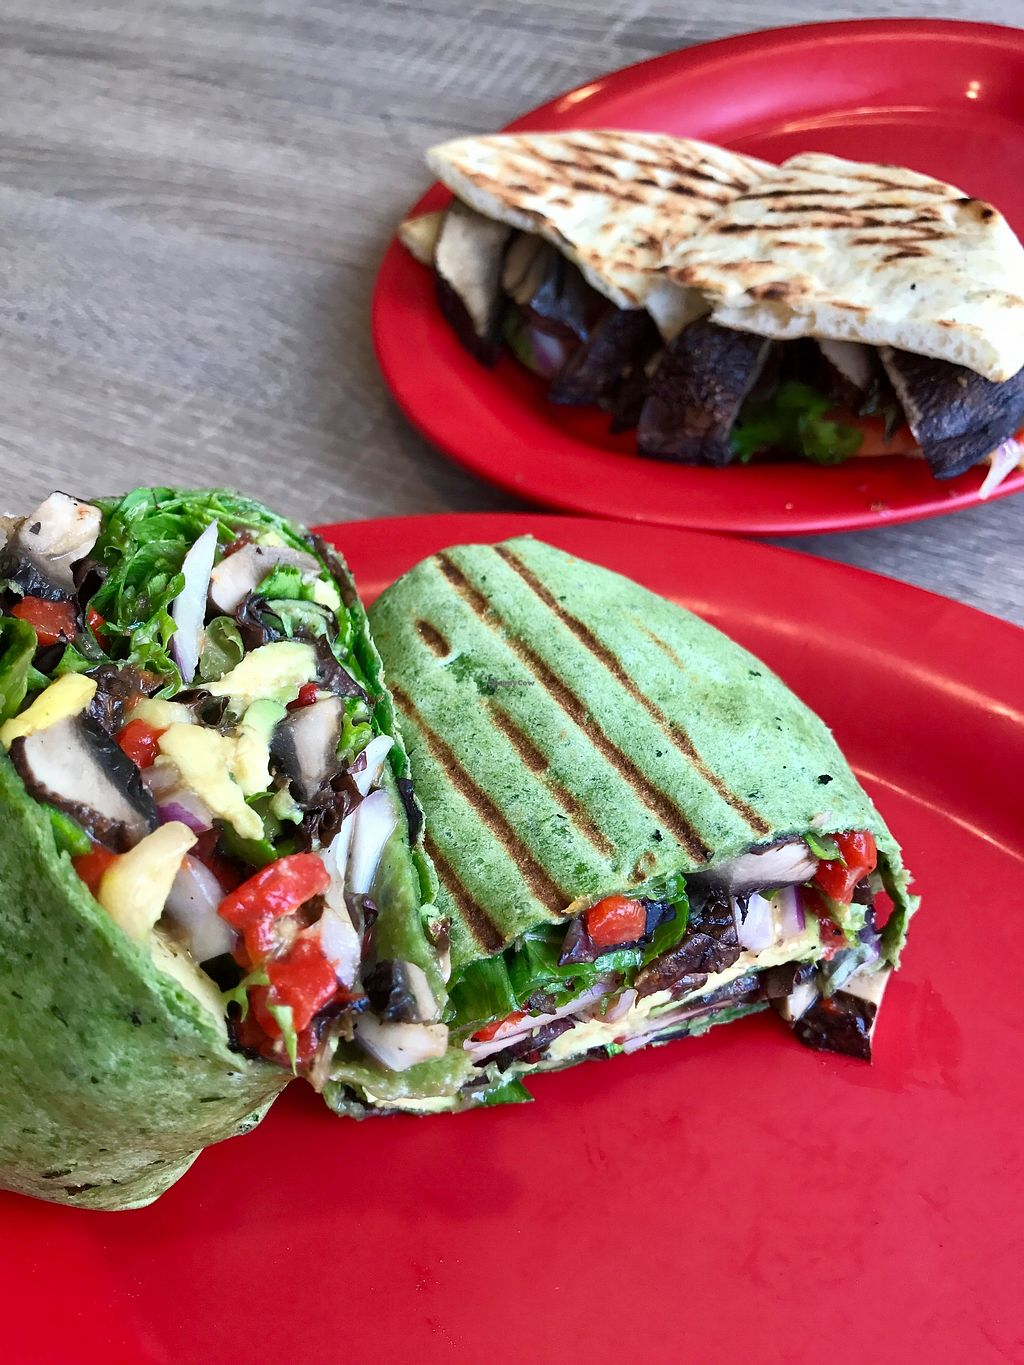 """Photo of Doc Green's  by <a href=""""/members/profile/melissapedroso"""">melissapedroso</a> <br/>Grilled veggie wrap <br/> July 12, 2017  - <a href='/contact/abuse/image/96076/279635'>Report</a>"""